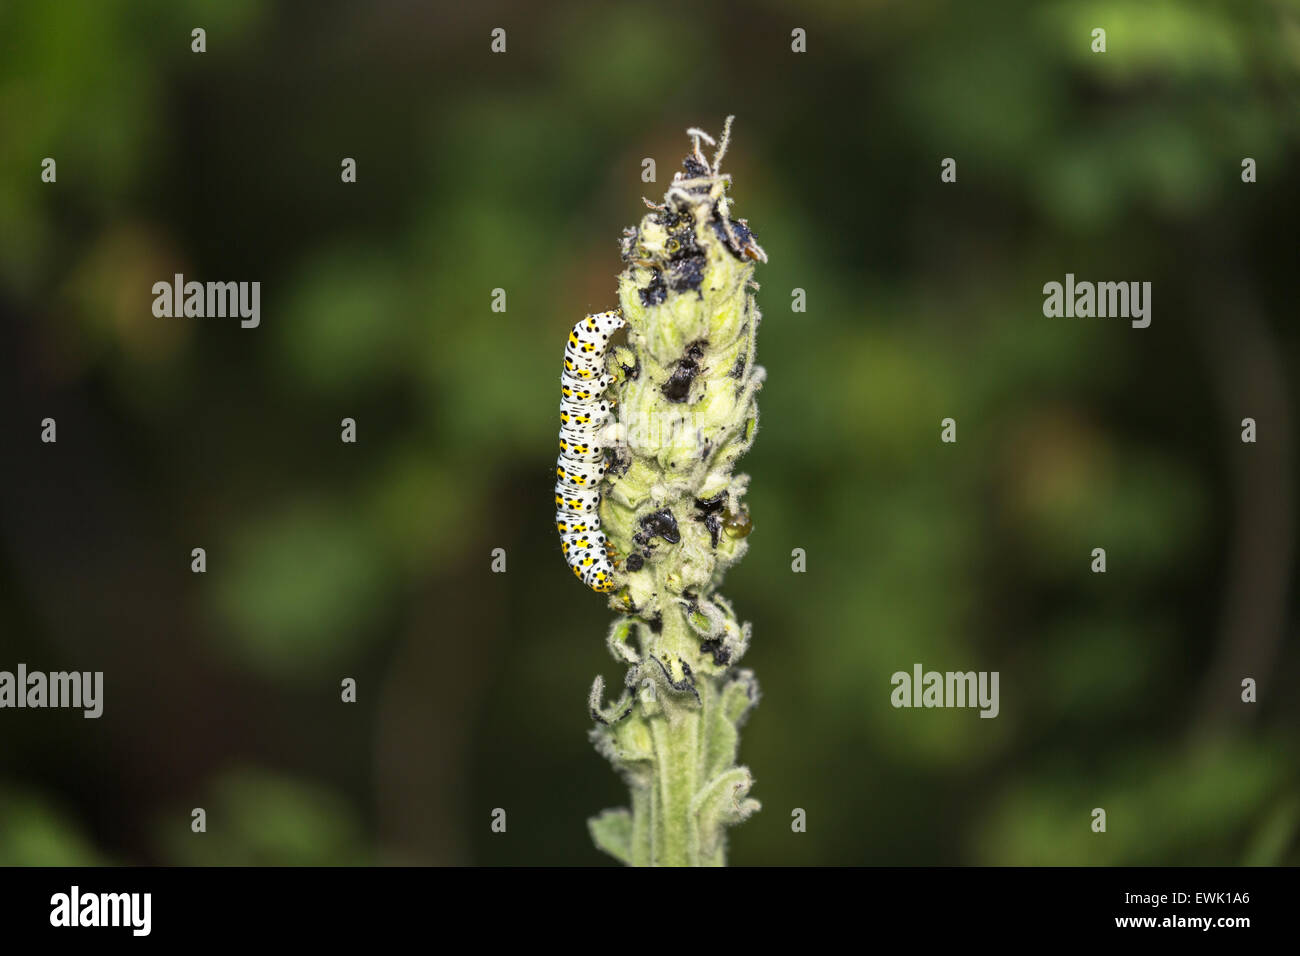 Caterpillar of the mullein moth, Cucullia verbasci, a Palearctic noctuid moth, feeding on verbascum in a Surrey - Stock Image